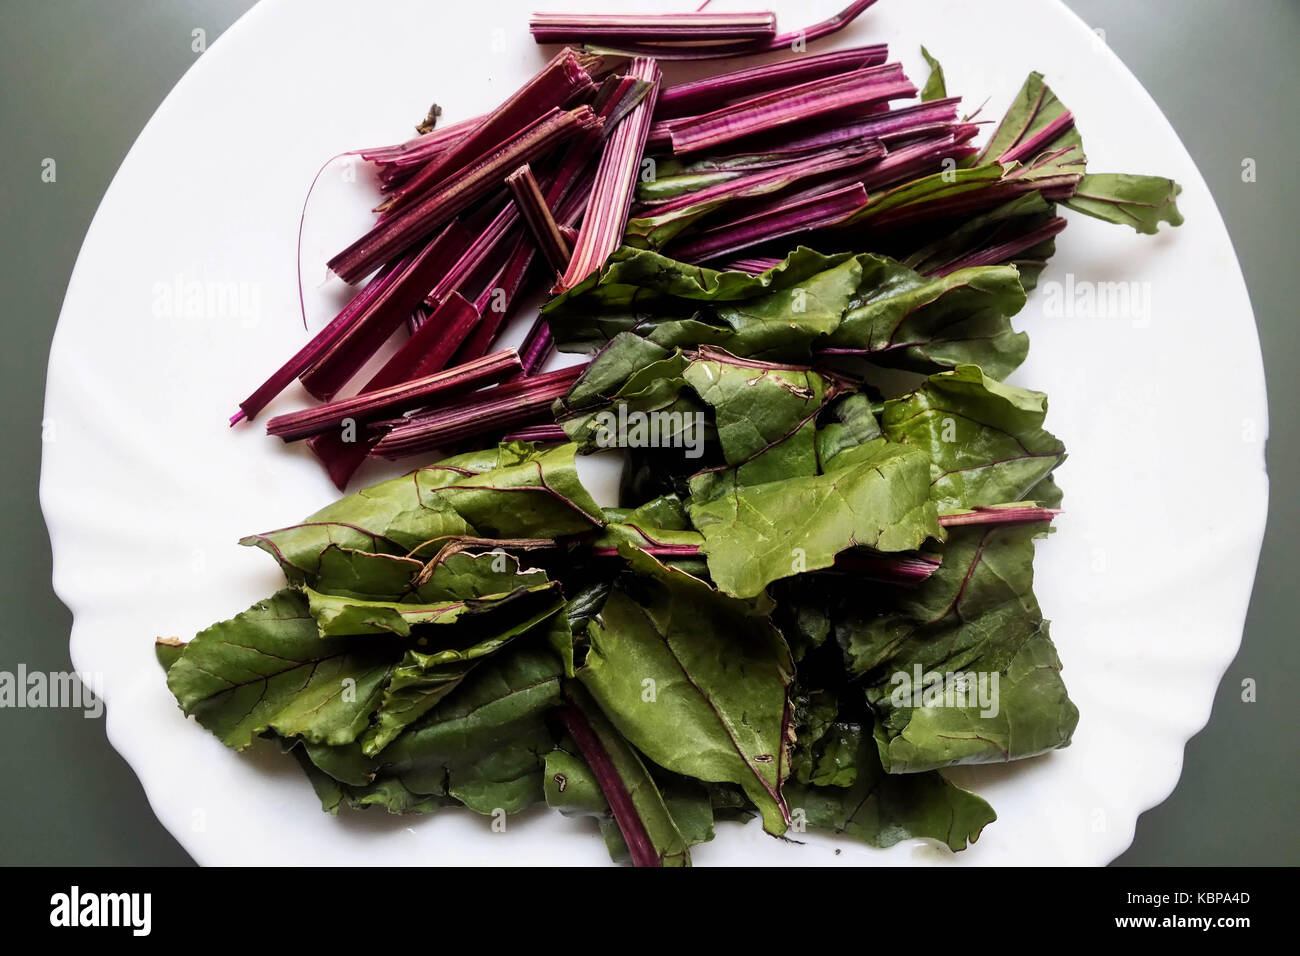 Raw Beetroot Leaves and Stems prior to cooking - Stock Image